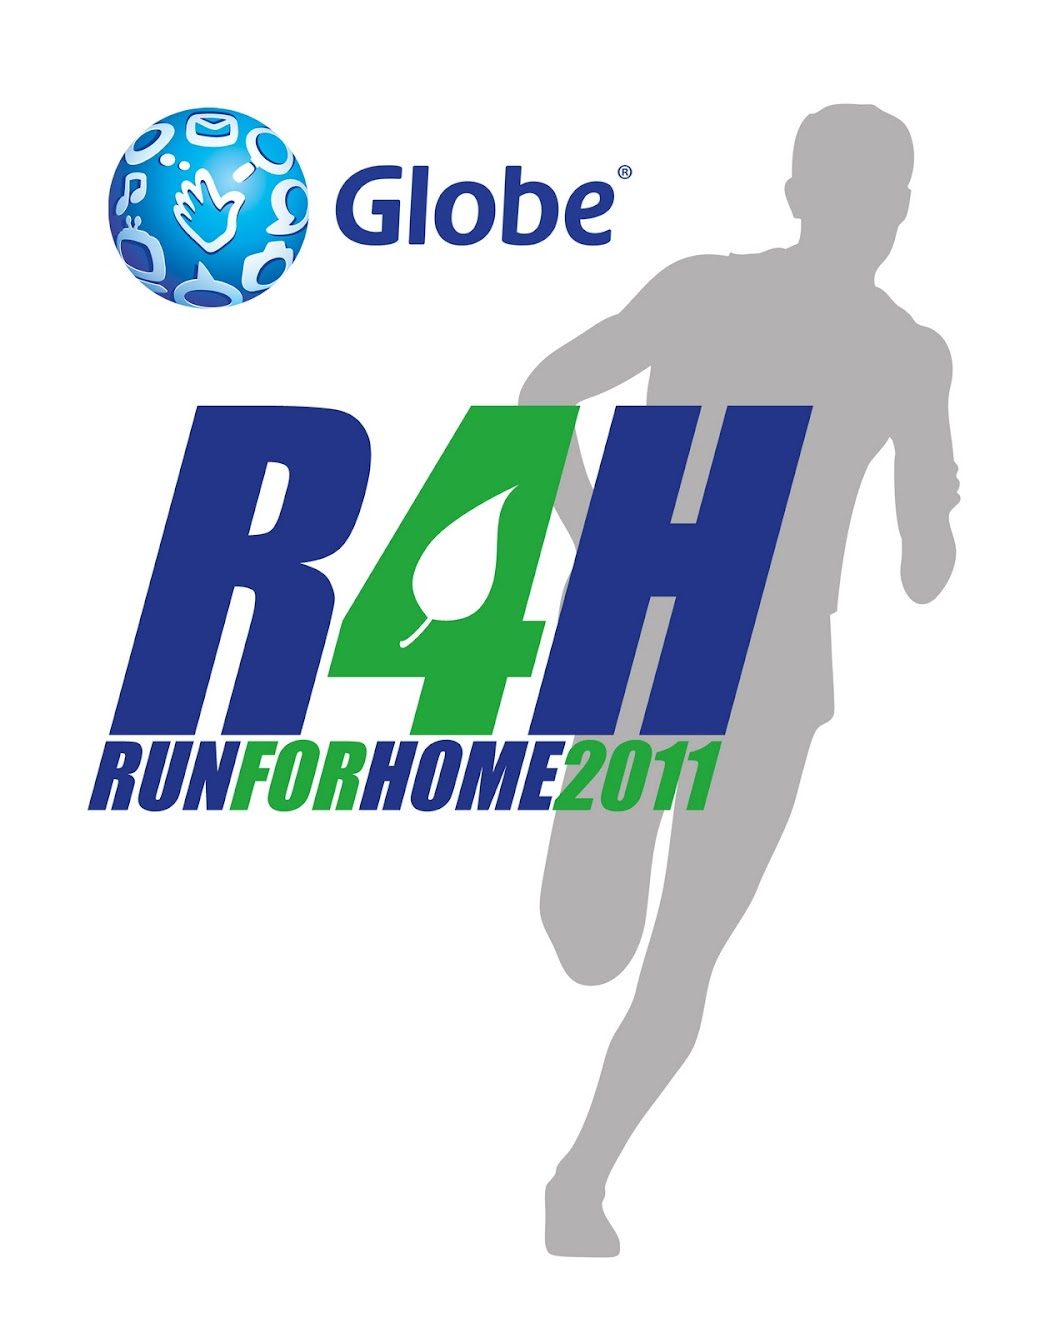 Globe Run For Home 2011 : Different Year, Same Spirit